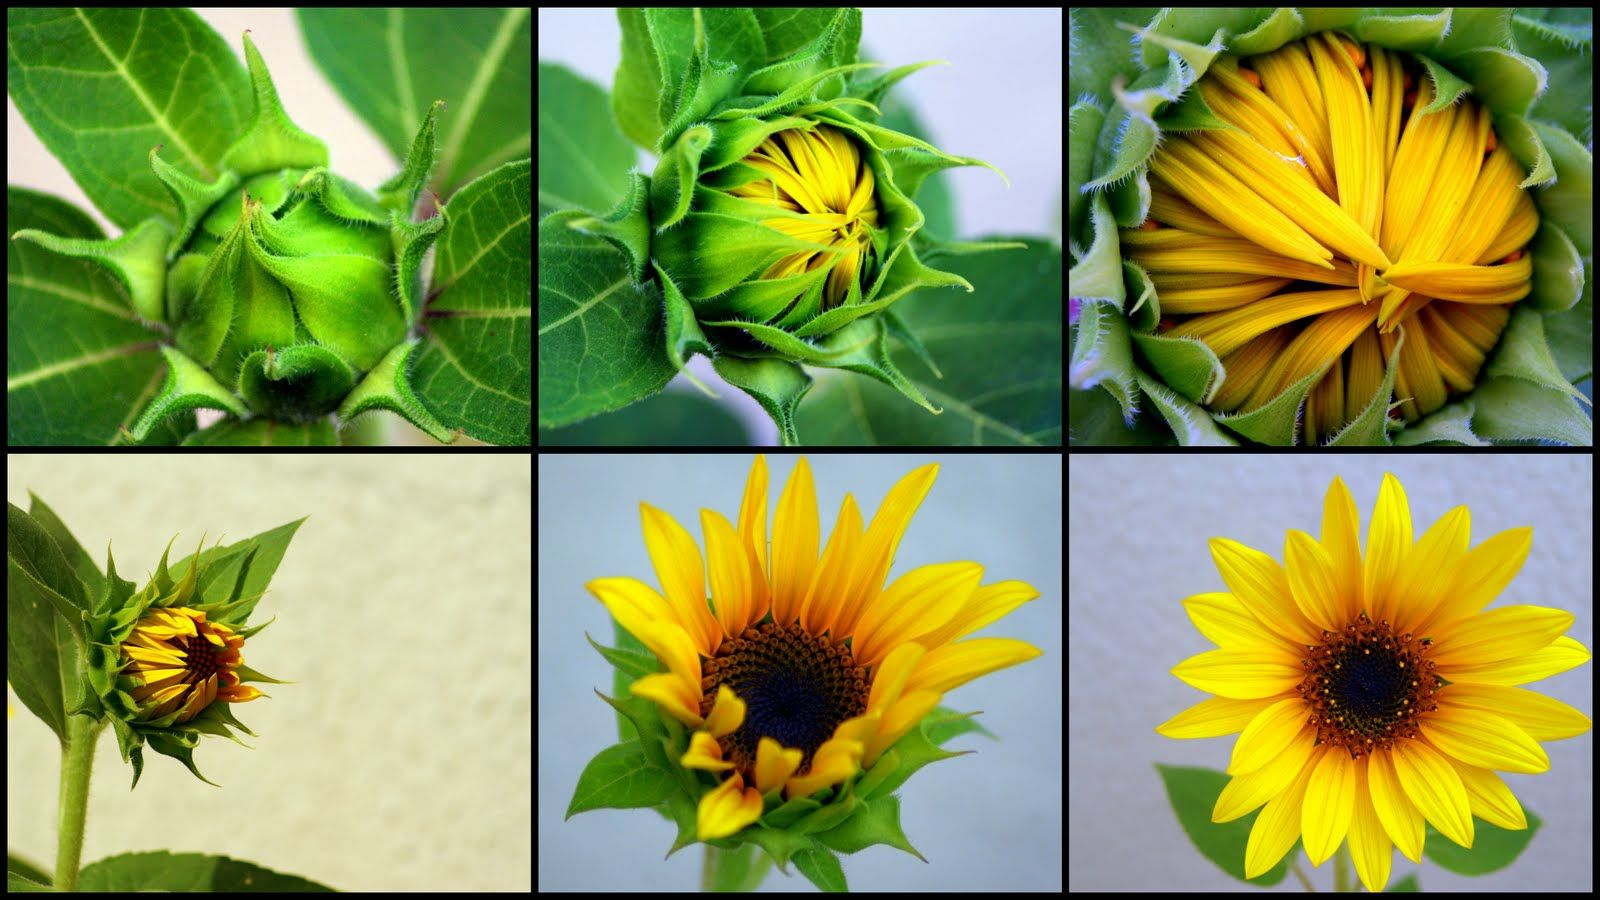 Flower Growth Stages Google Search Blooming Sunflower Growing Seeds Bloom